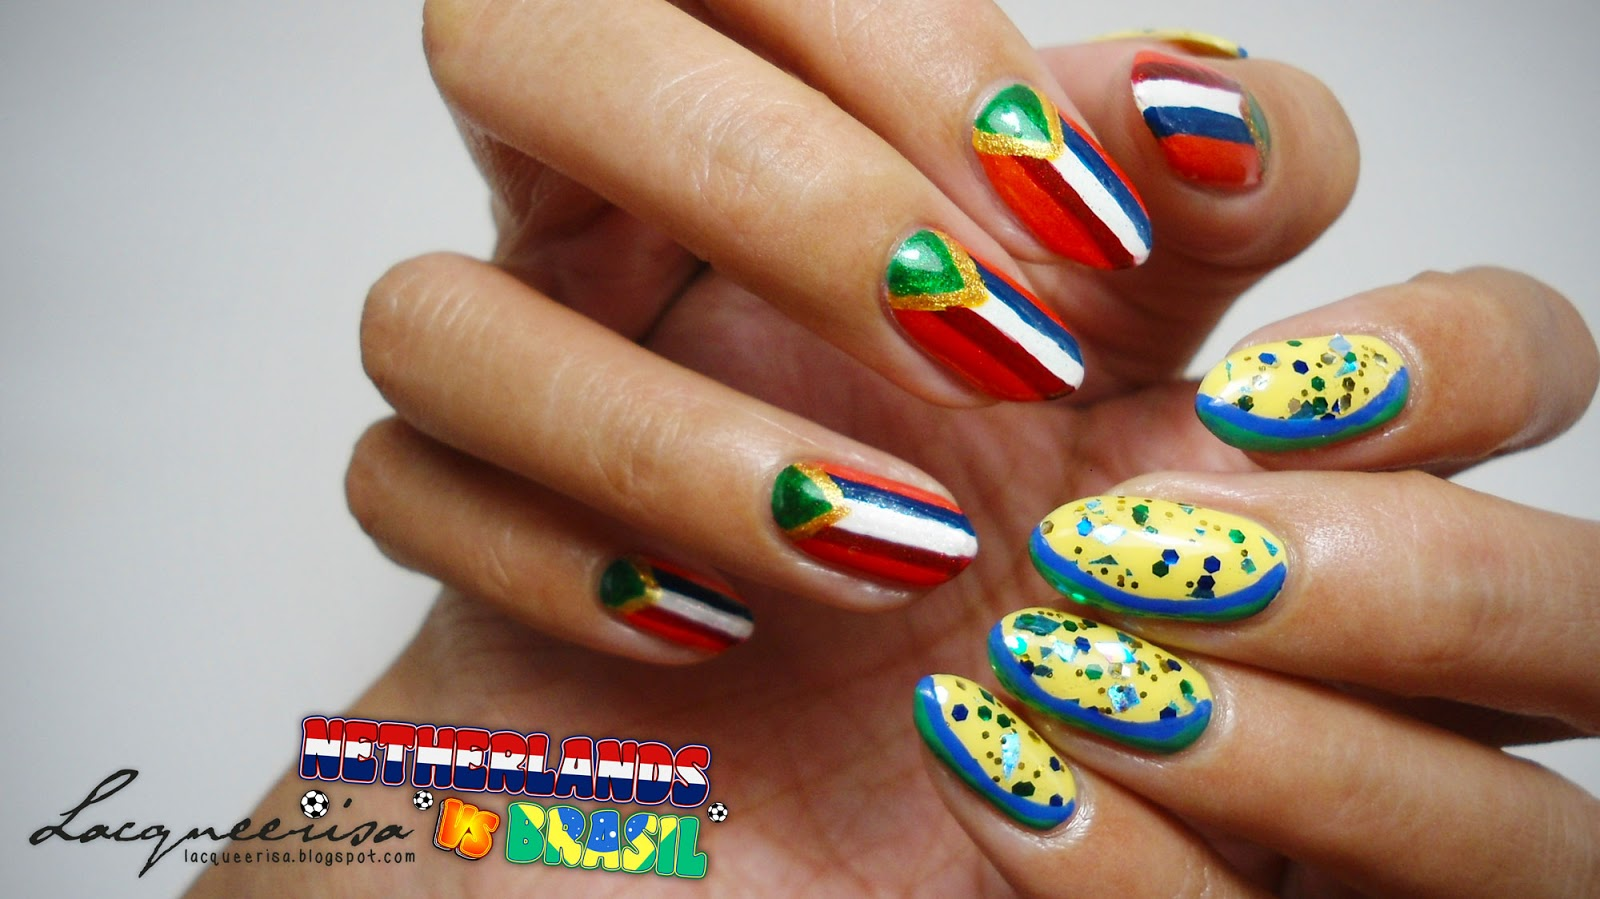 Brasil vs Netherlands Nails lacqueerisa.blogspot.com